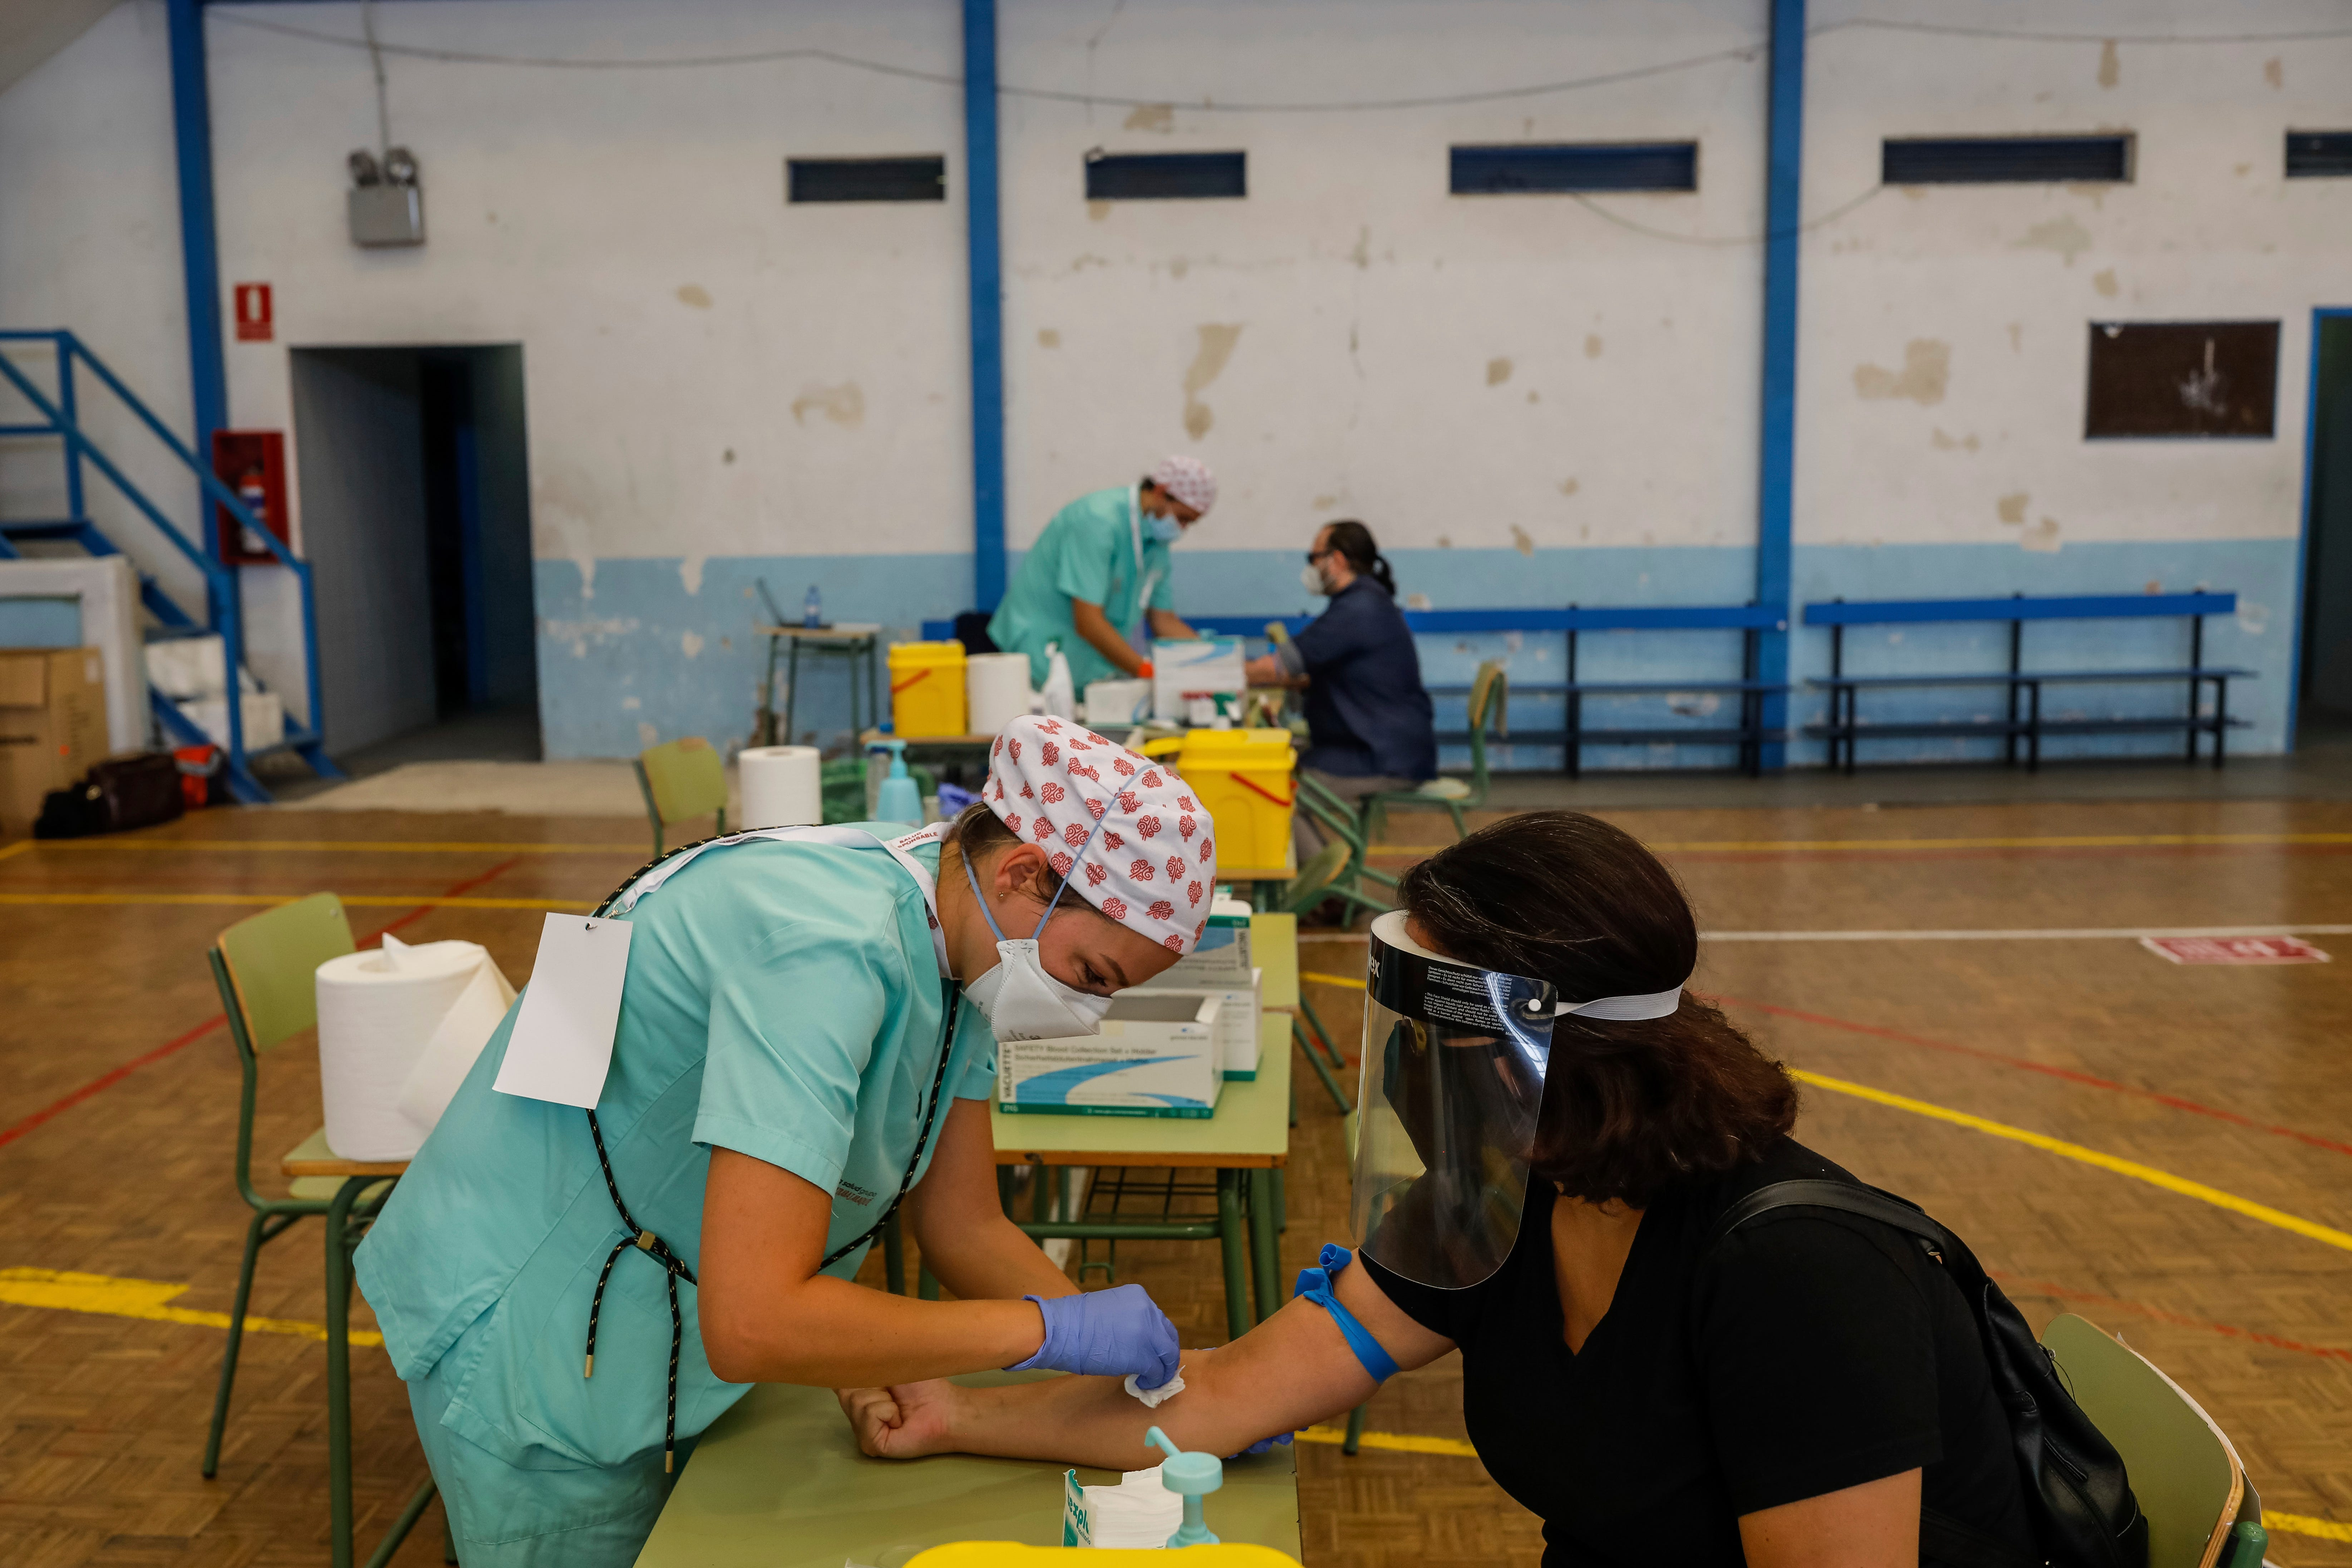 Teachers and auxiliary staff take COVID-19 tests in Madrid, Spain.